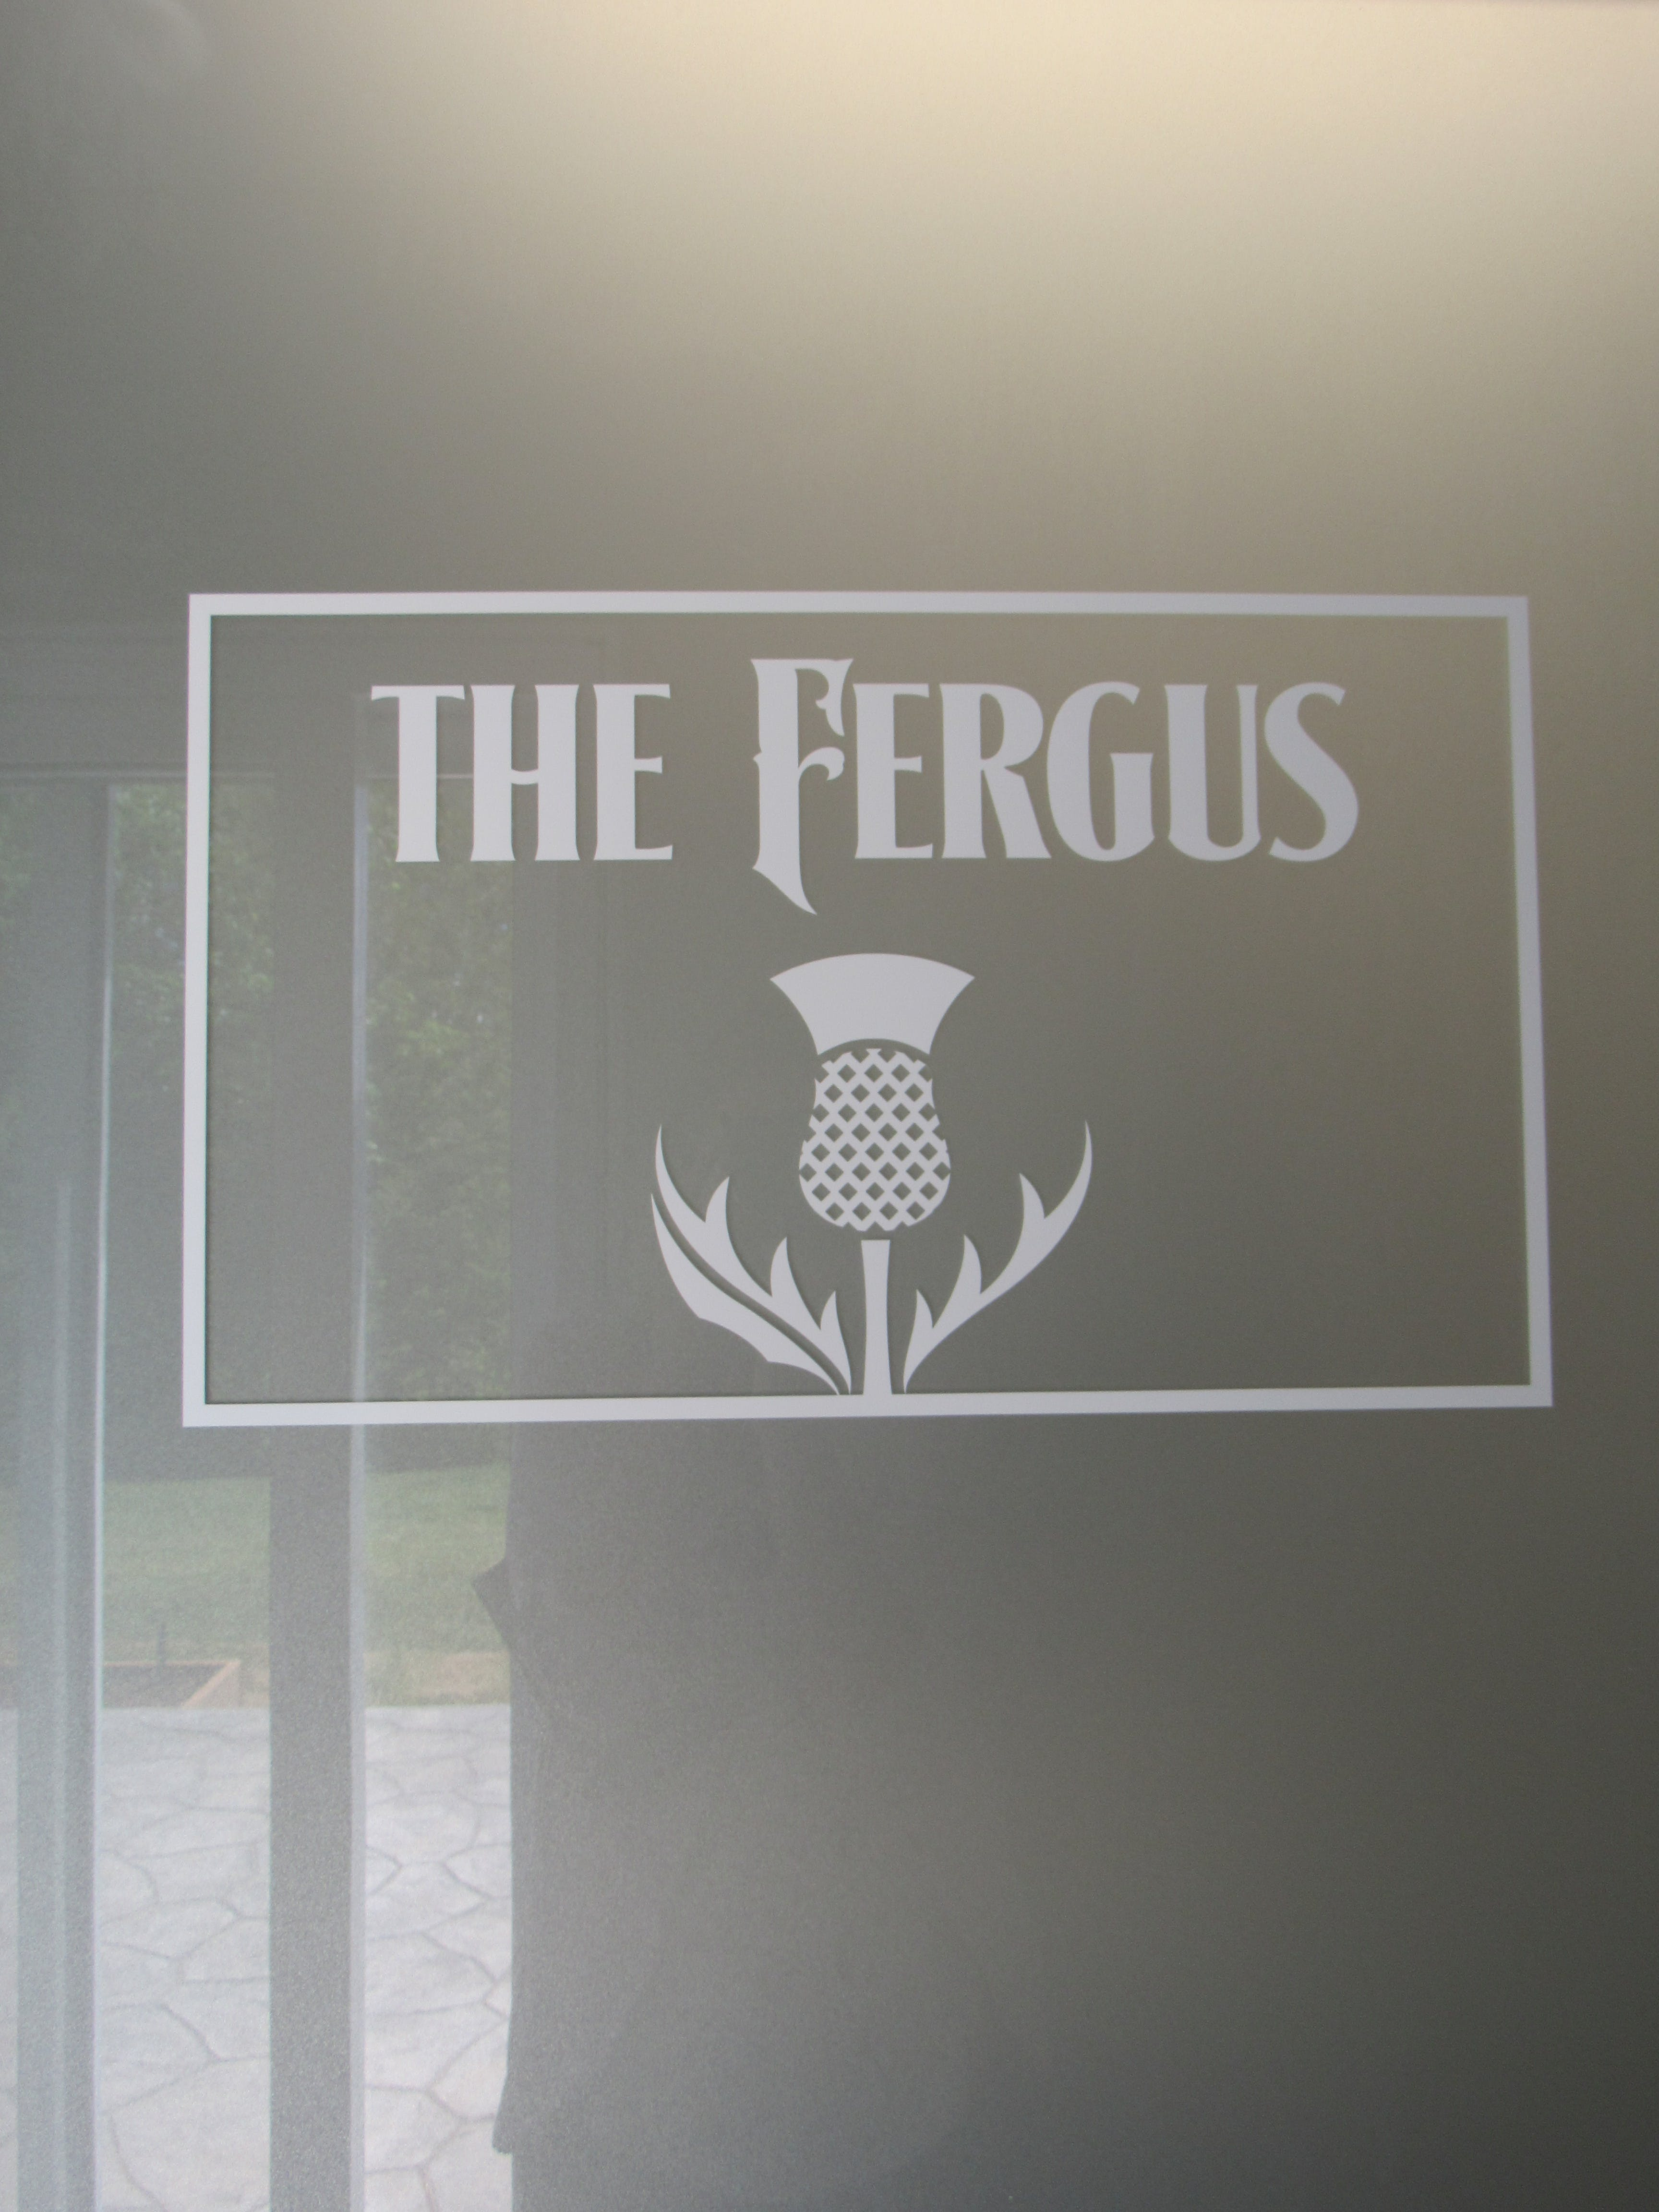 Entrance to the Fergus Suite bathroom.